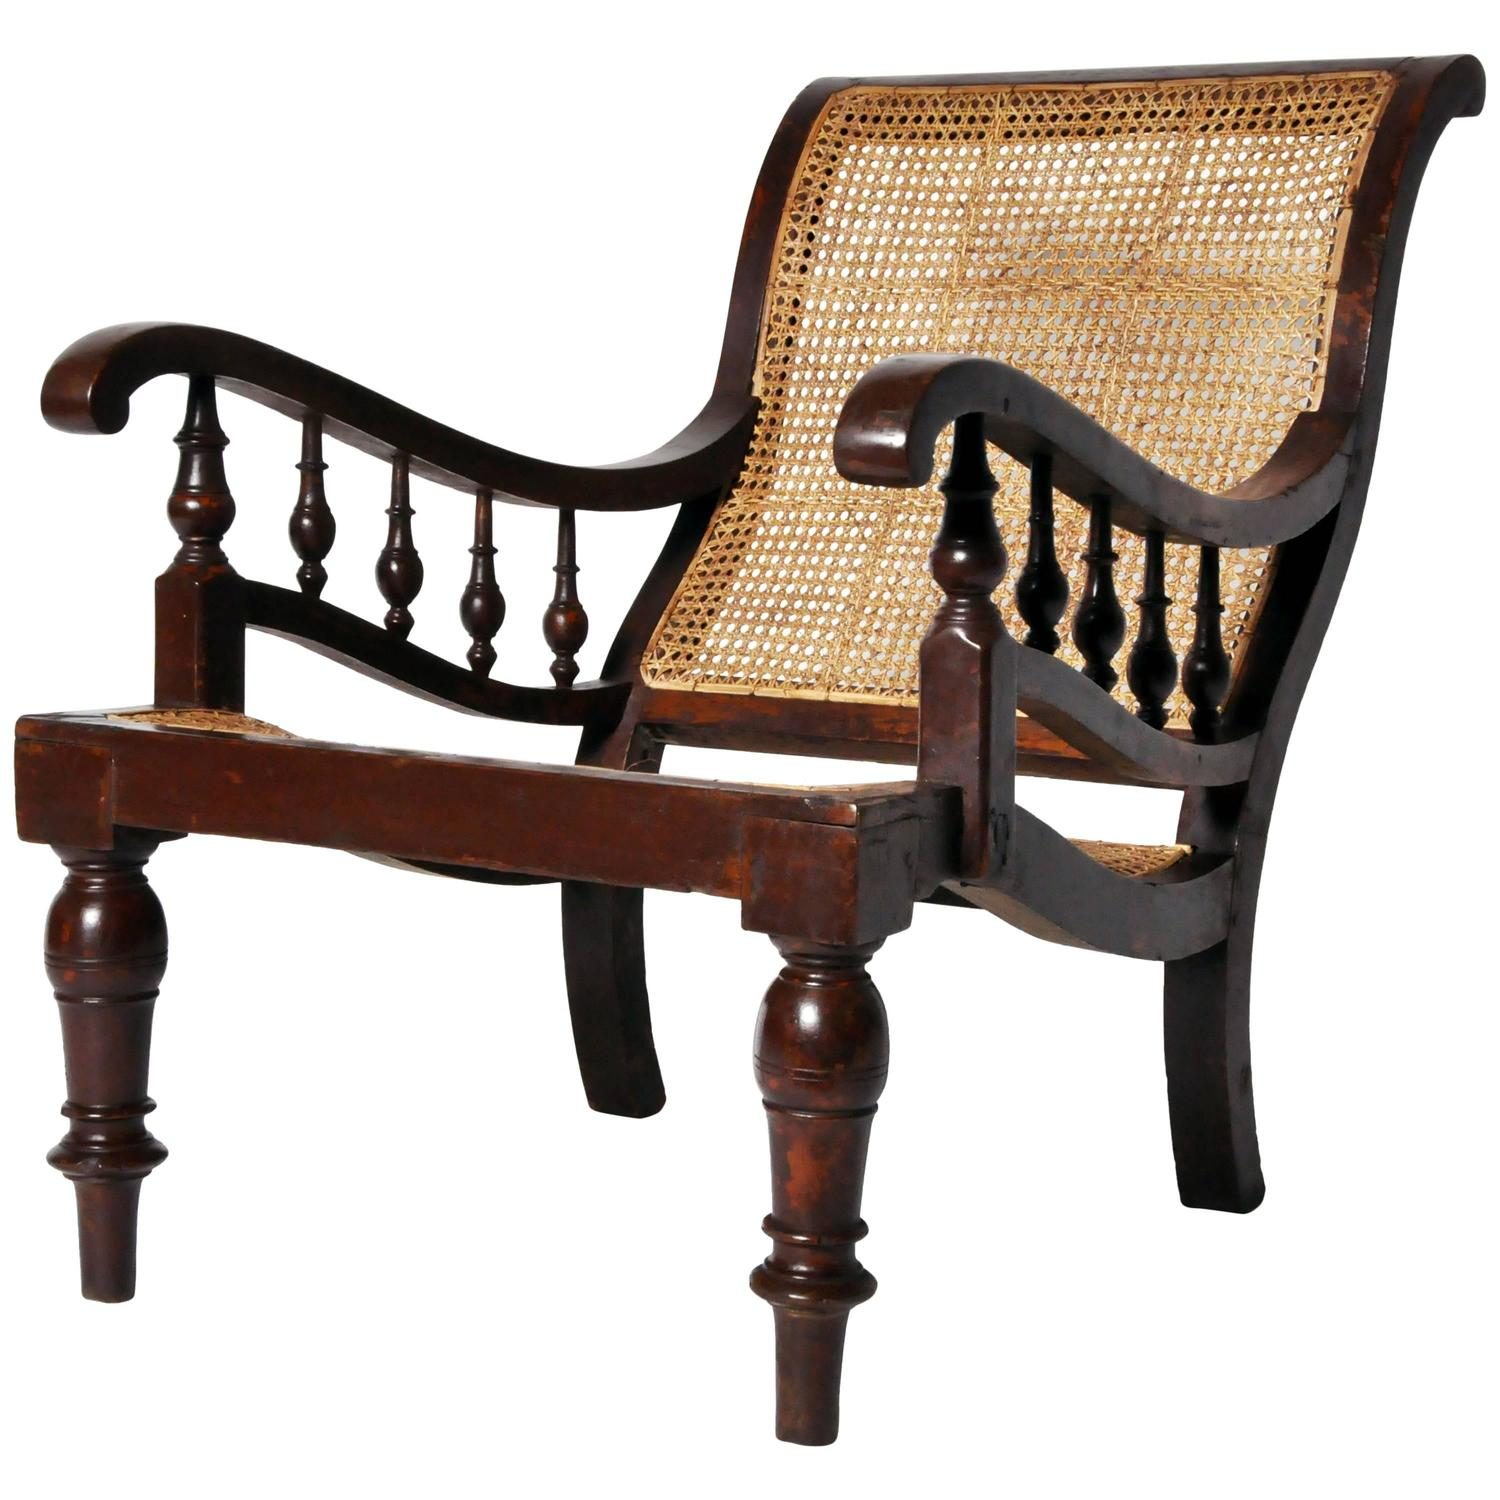 british colonial chair nash accessories planters at 1stdibs